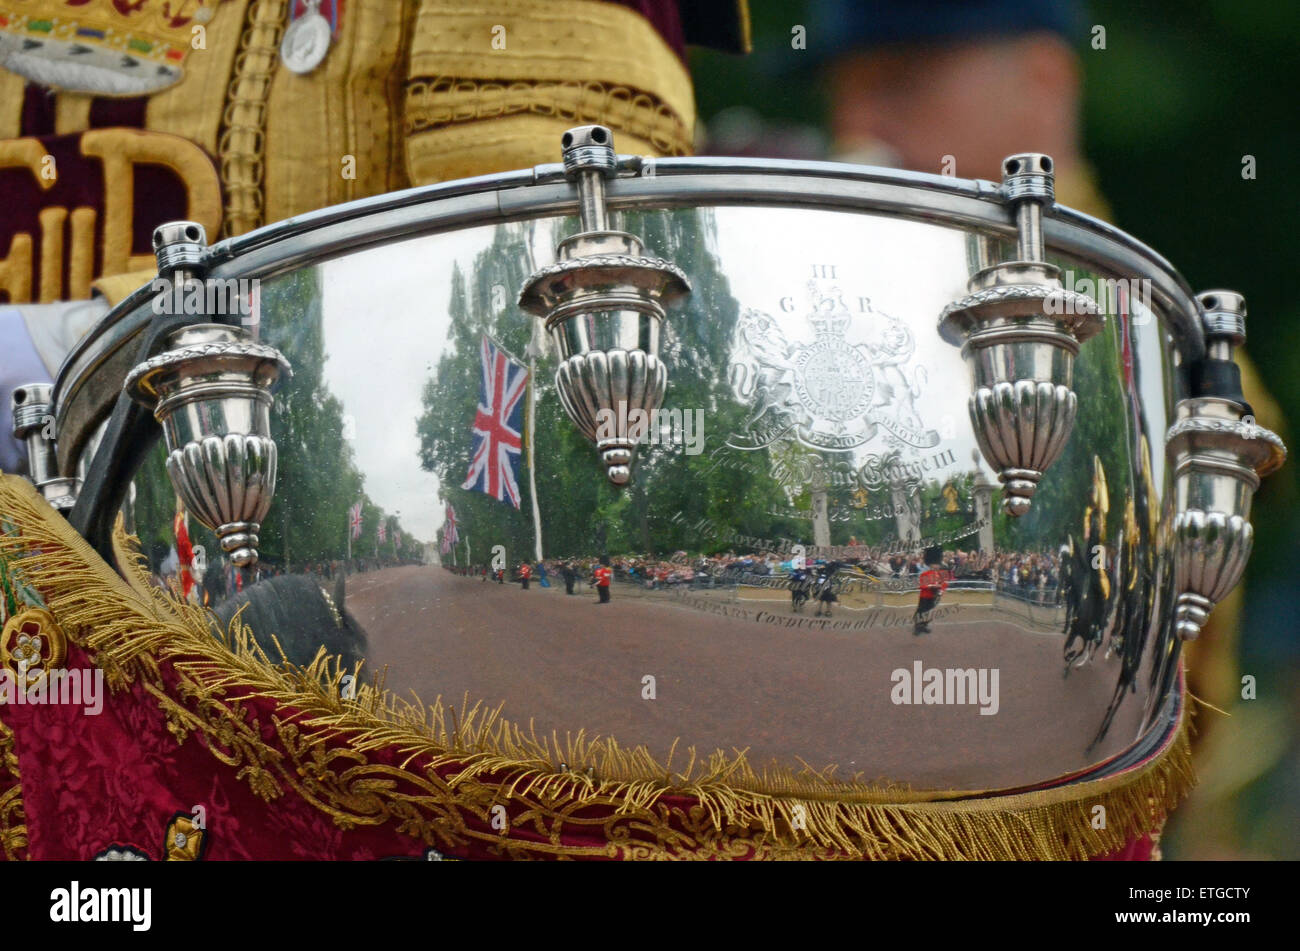 kettle-drum-reflection-trooping-of-the-colour-in-the-mall-london-ETGCTY.jpg